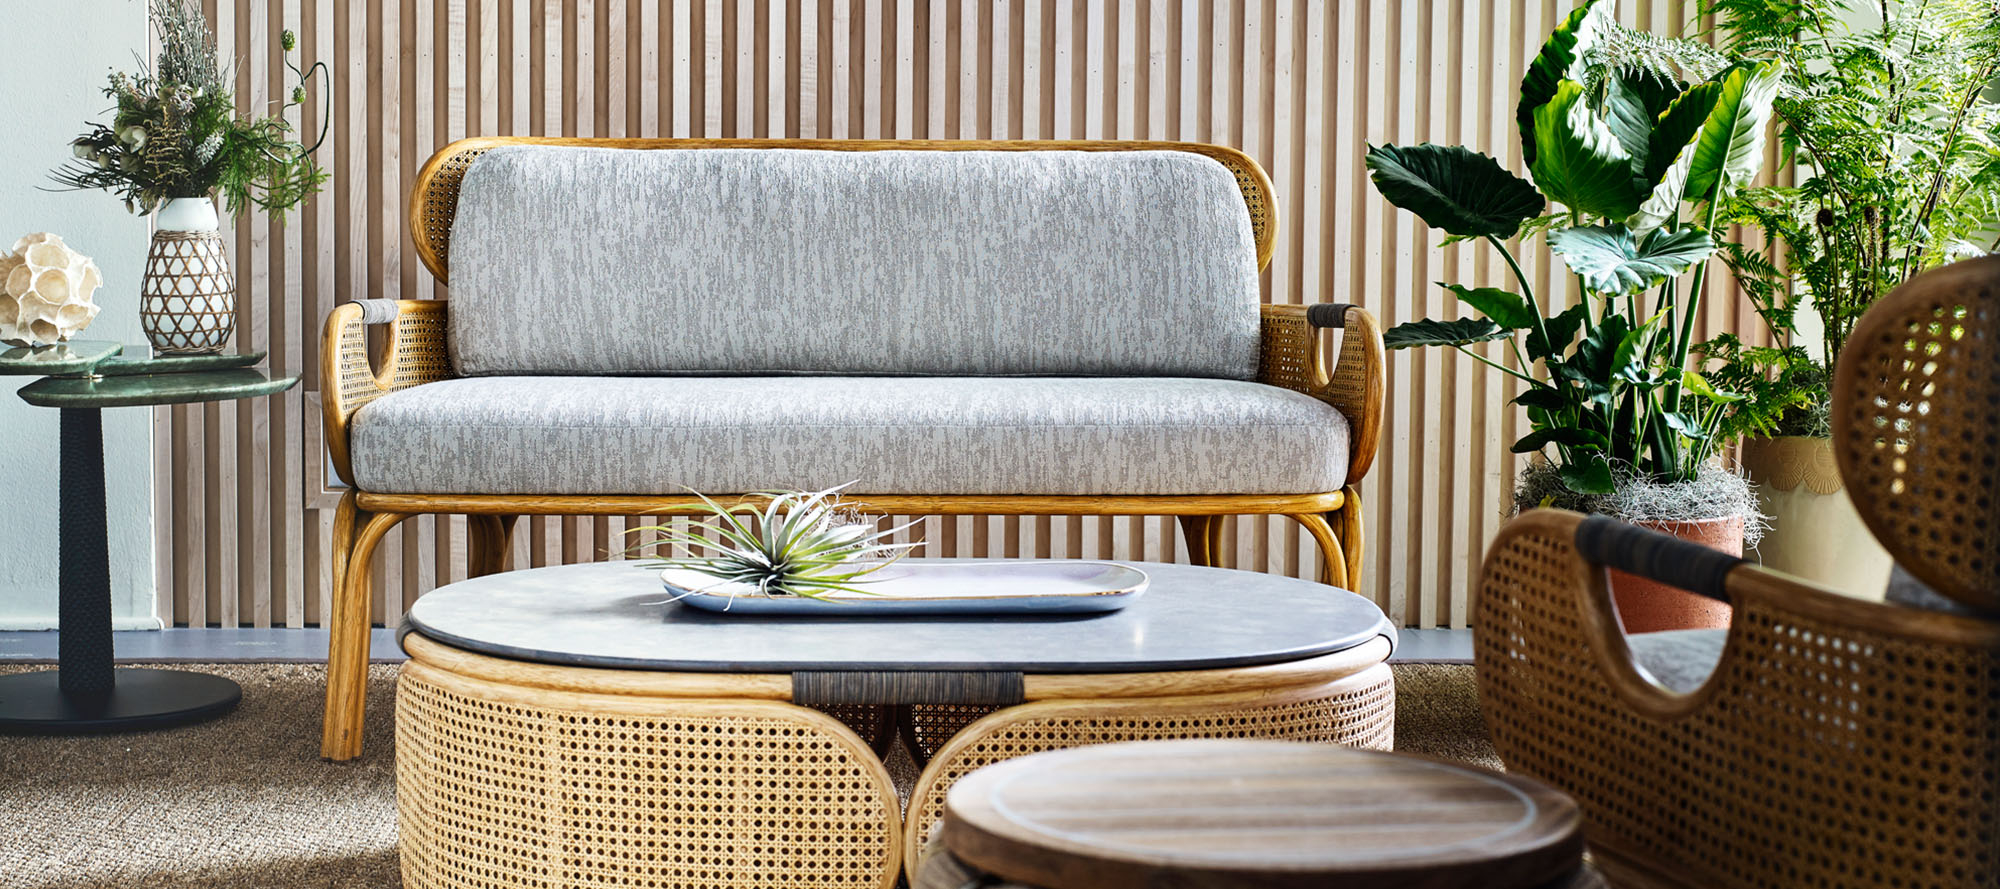 Jamie durie for mcguire mcguire furniture